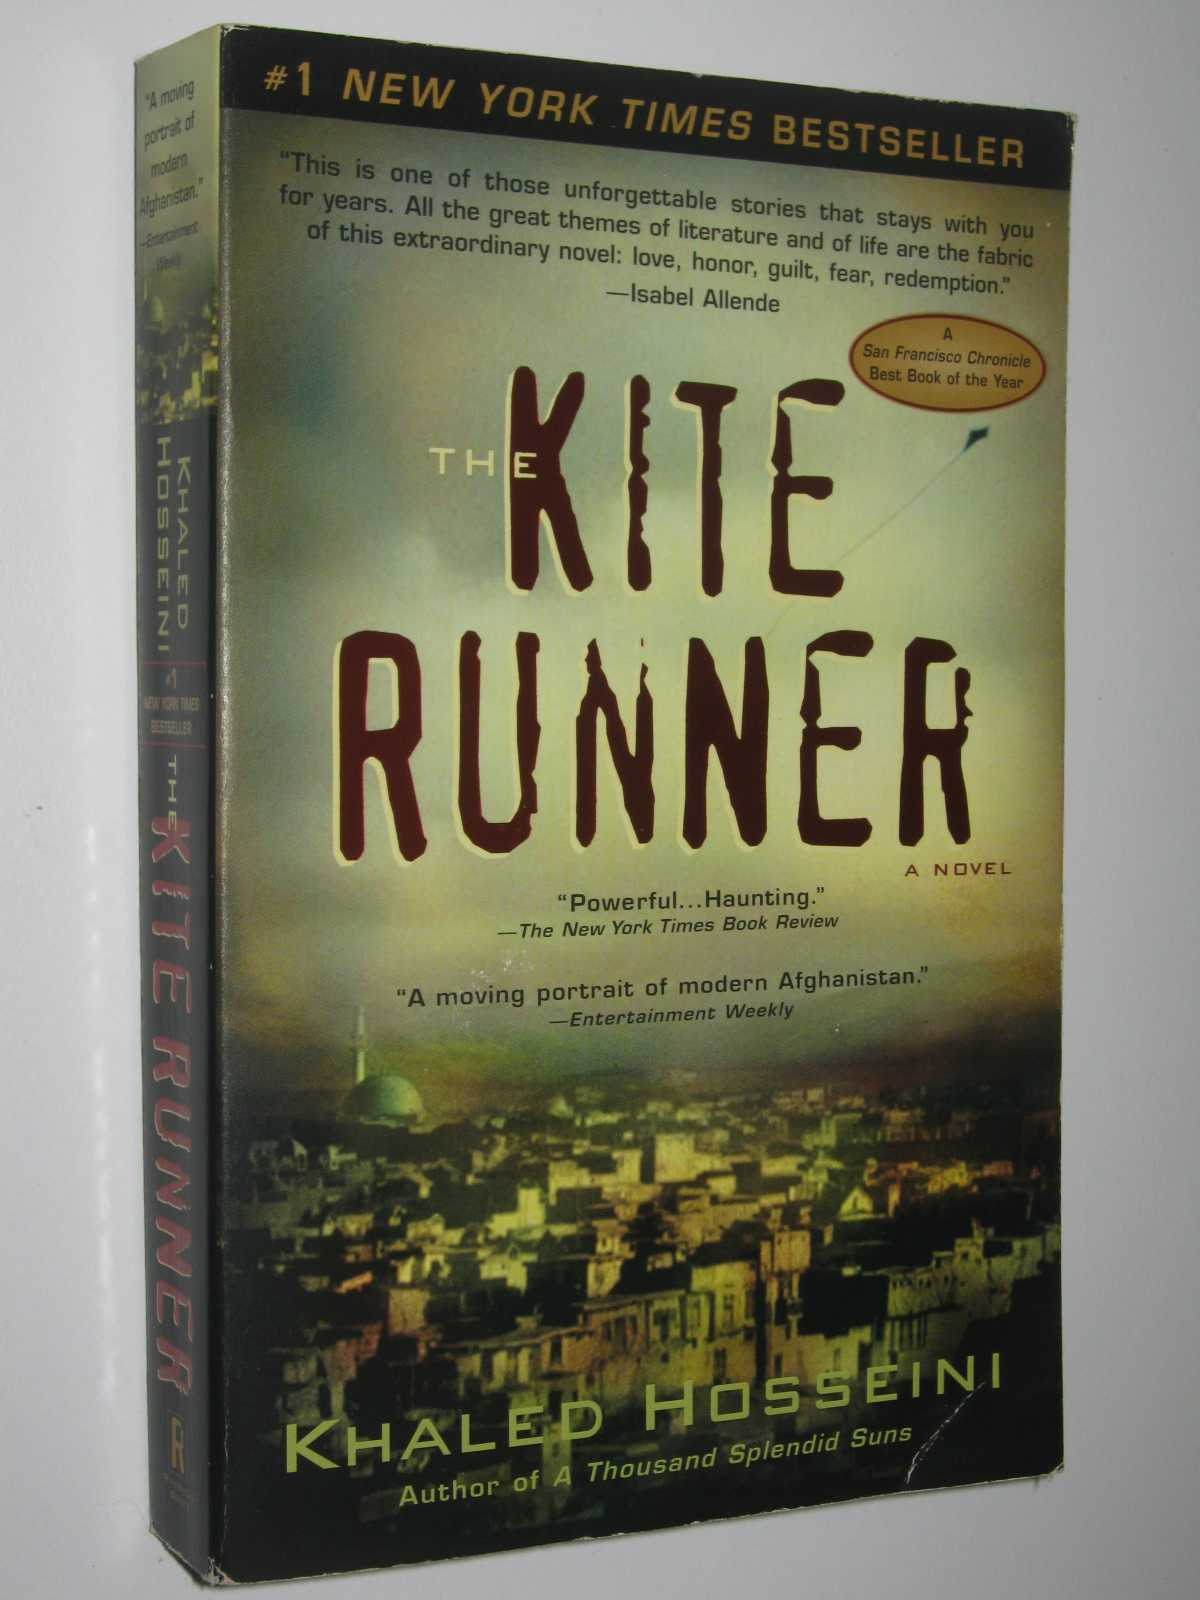 the kite runner by khaled hosseini The kite runner is a novel by the author khaled hosseini published in 2003 by riverhead books, it is hosseini's first novel, and was adapted into a film of.